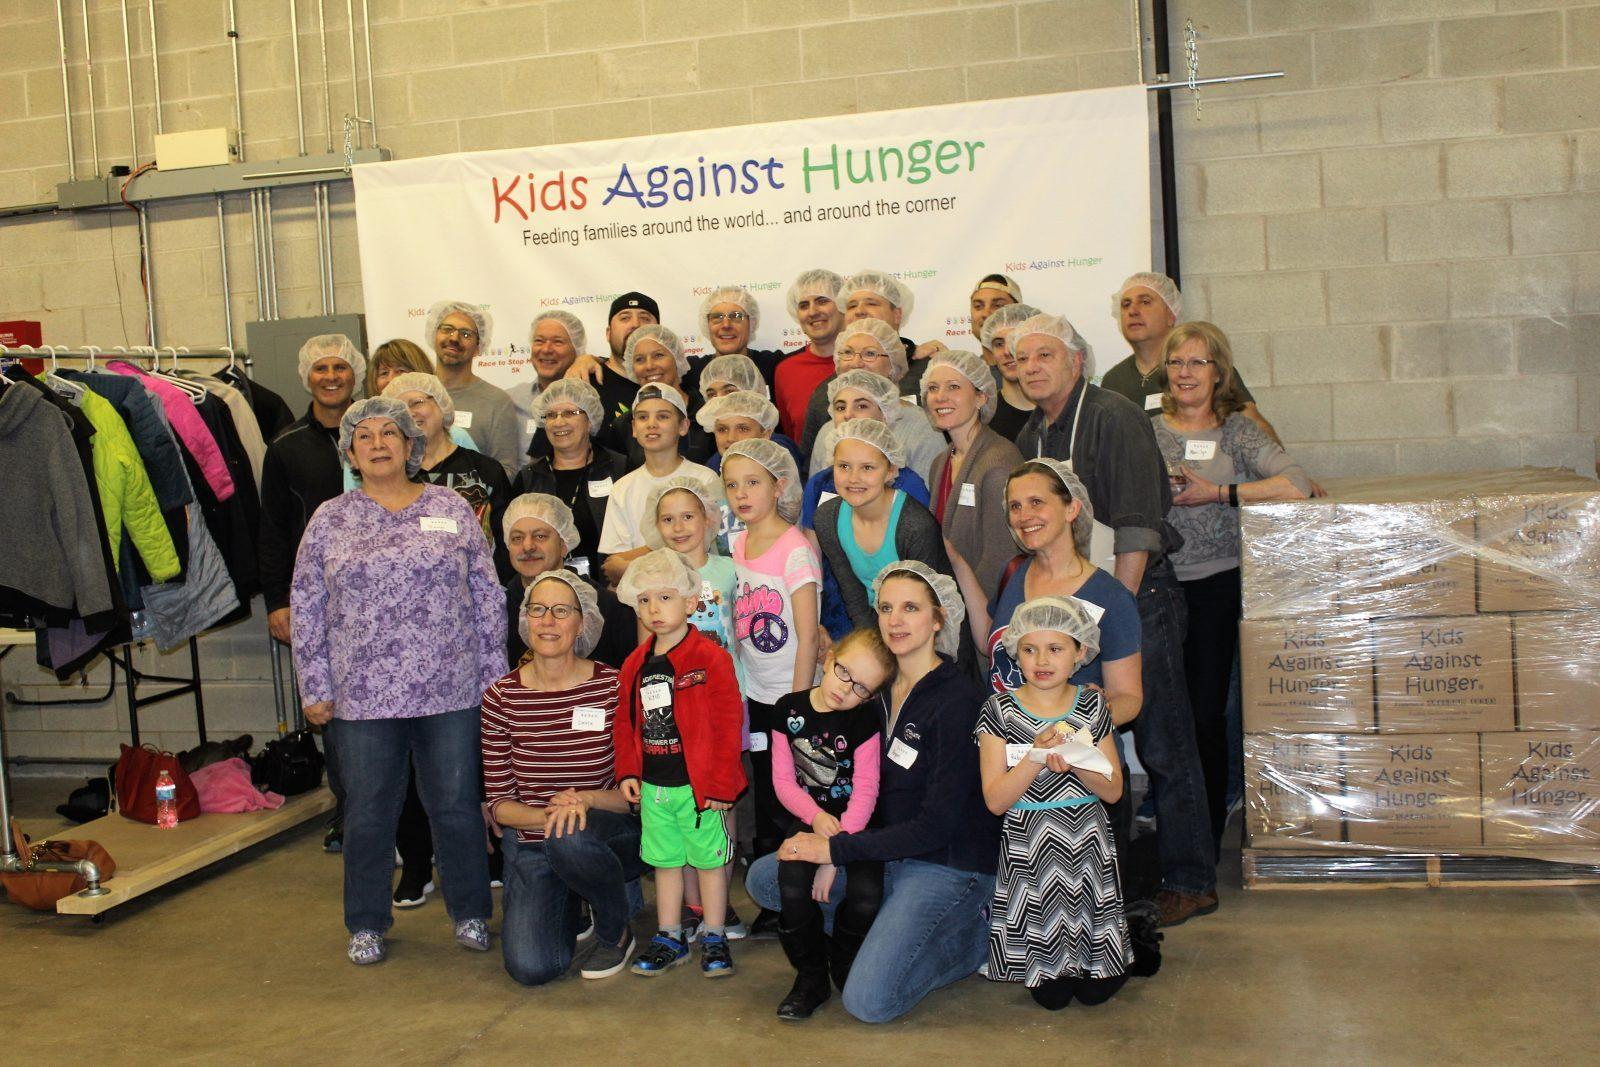 Atomatic Employees Pack 9,760 Meals for Kids Against Hunger